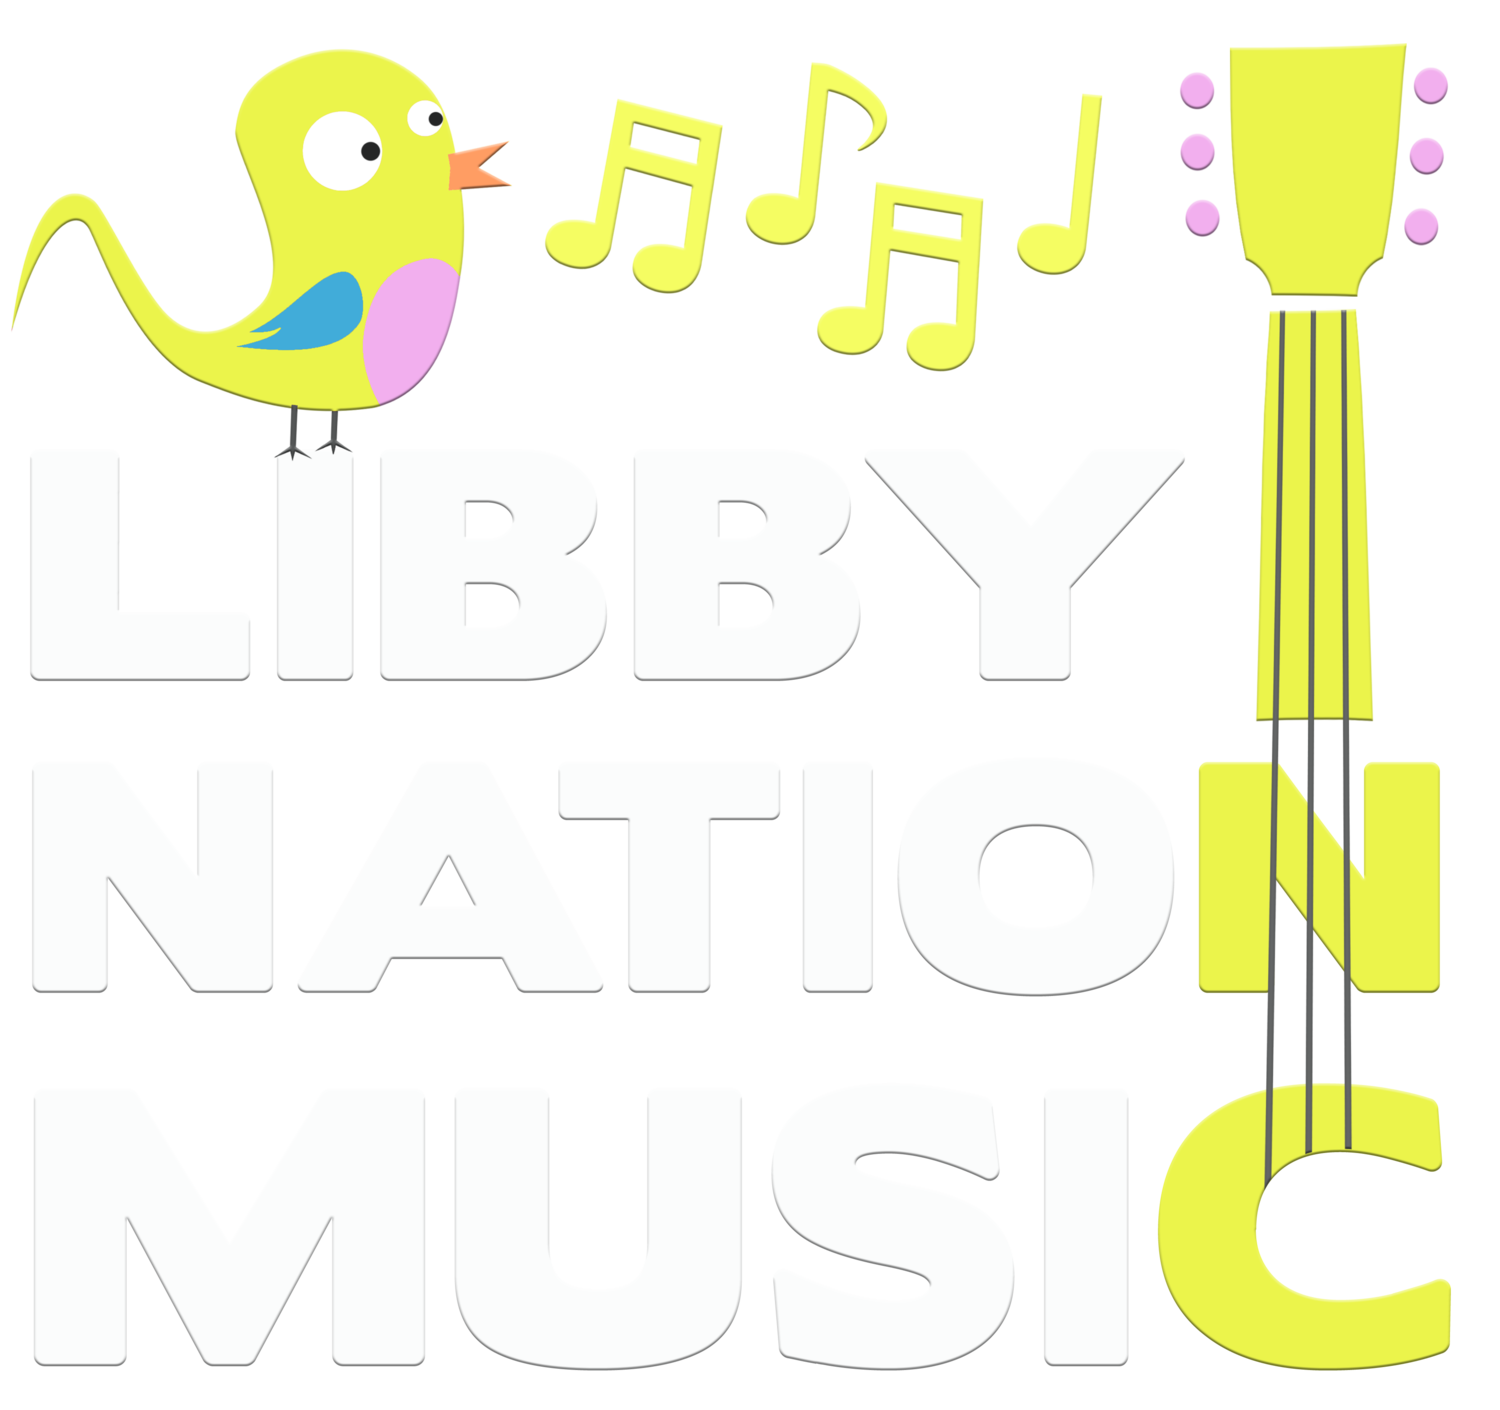 Libby nation shows home. Orchestra clipart music nashville